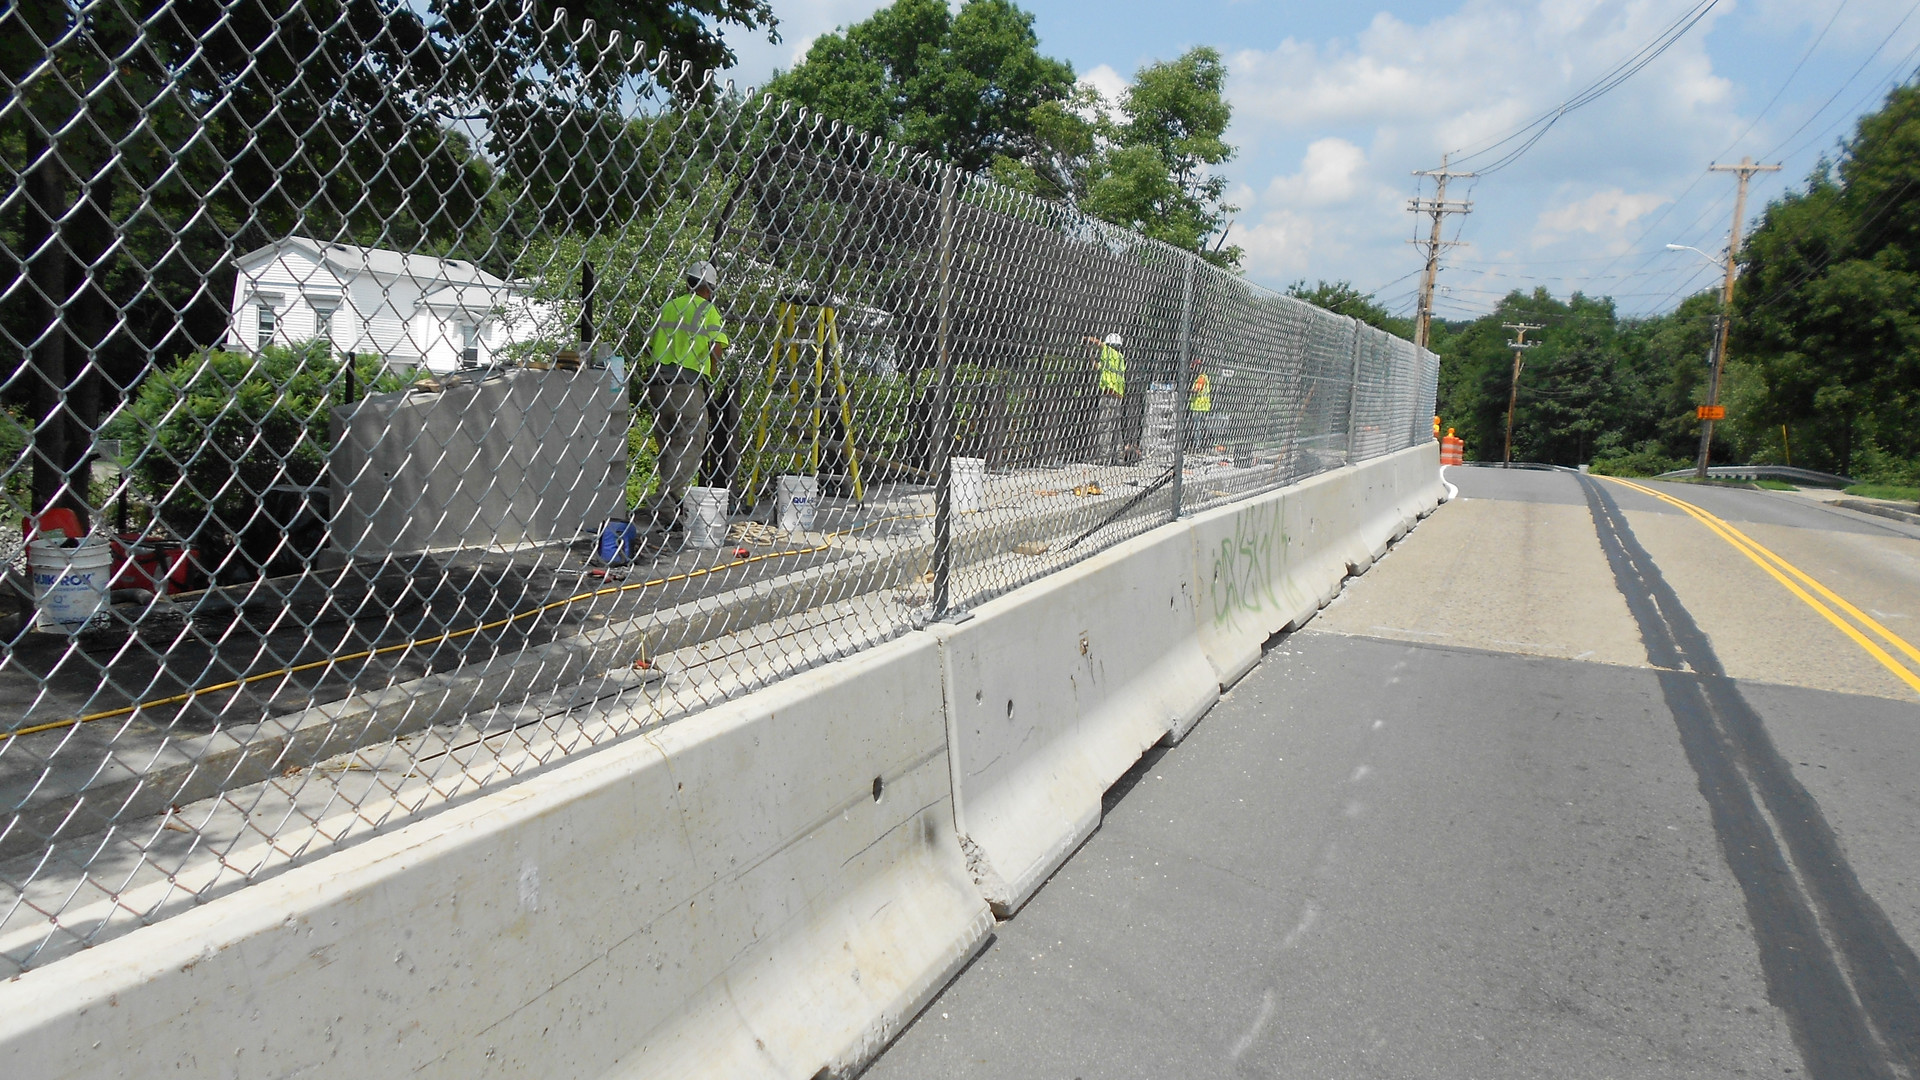 Temporary Fence on Jersey Barrier